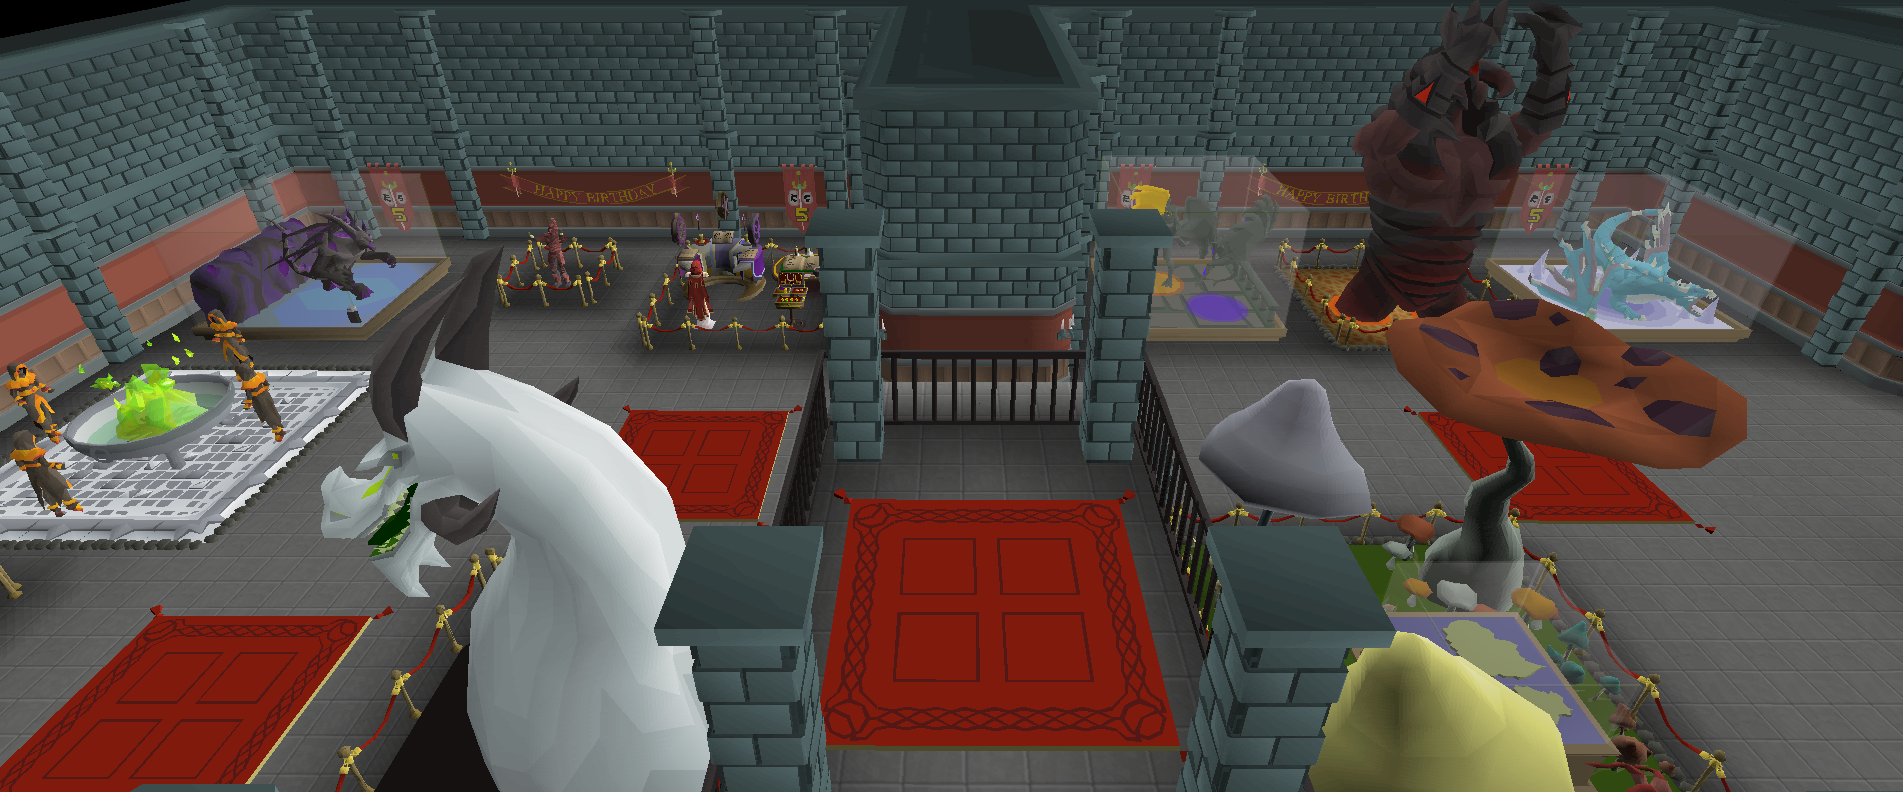 Osrs Update:old School Runescape\'s 5th Birthday - d2jsp Topic